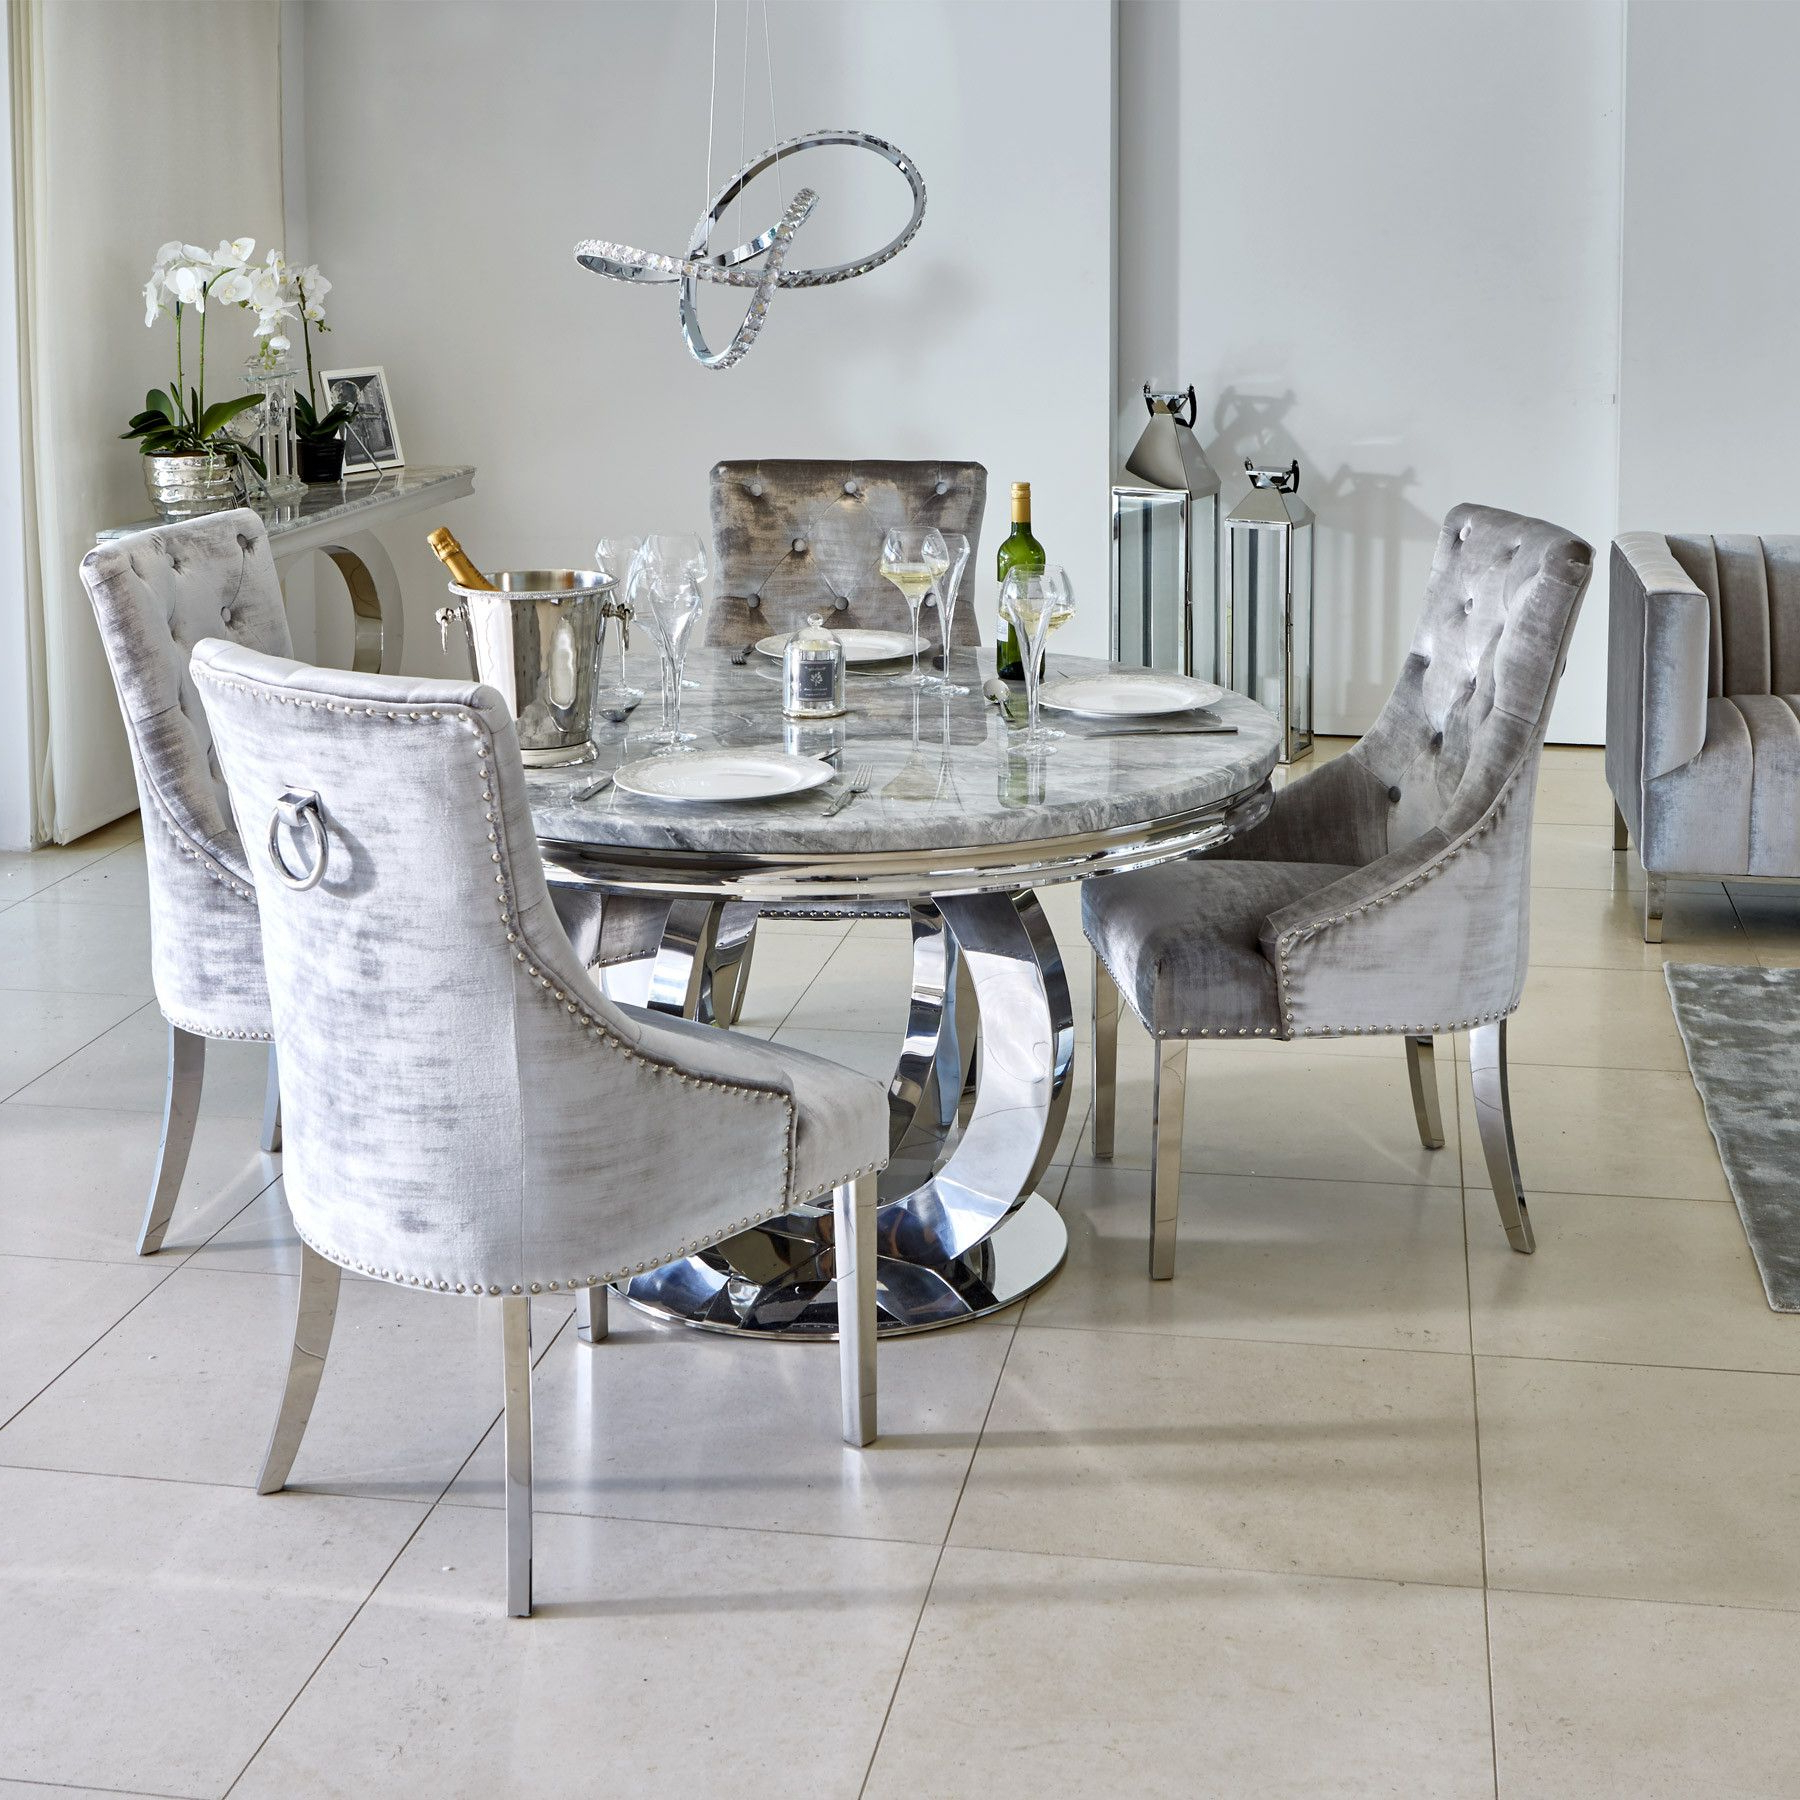 4 Seater Round Wooden Dining Tables With Chrome Legs in Trendy Oracle 130Cm Round Grey Marble Dining Table & 4 Parker Grey